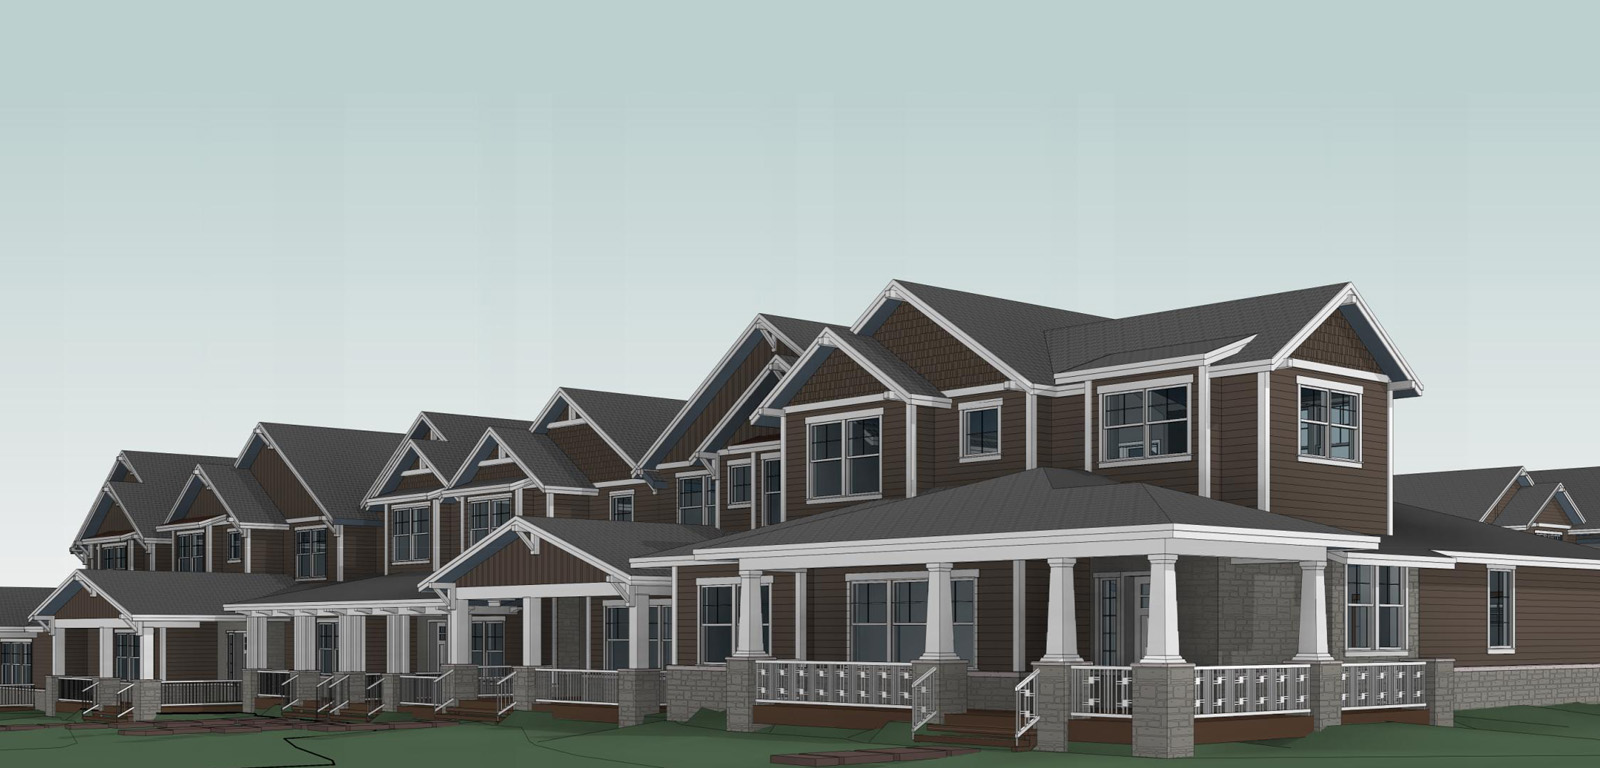 Townhome conceptual architecture from the front view